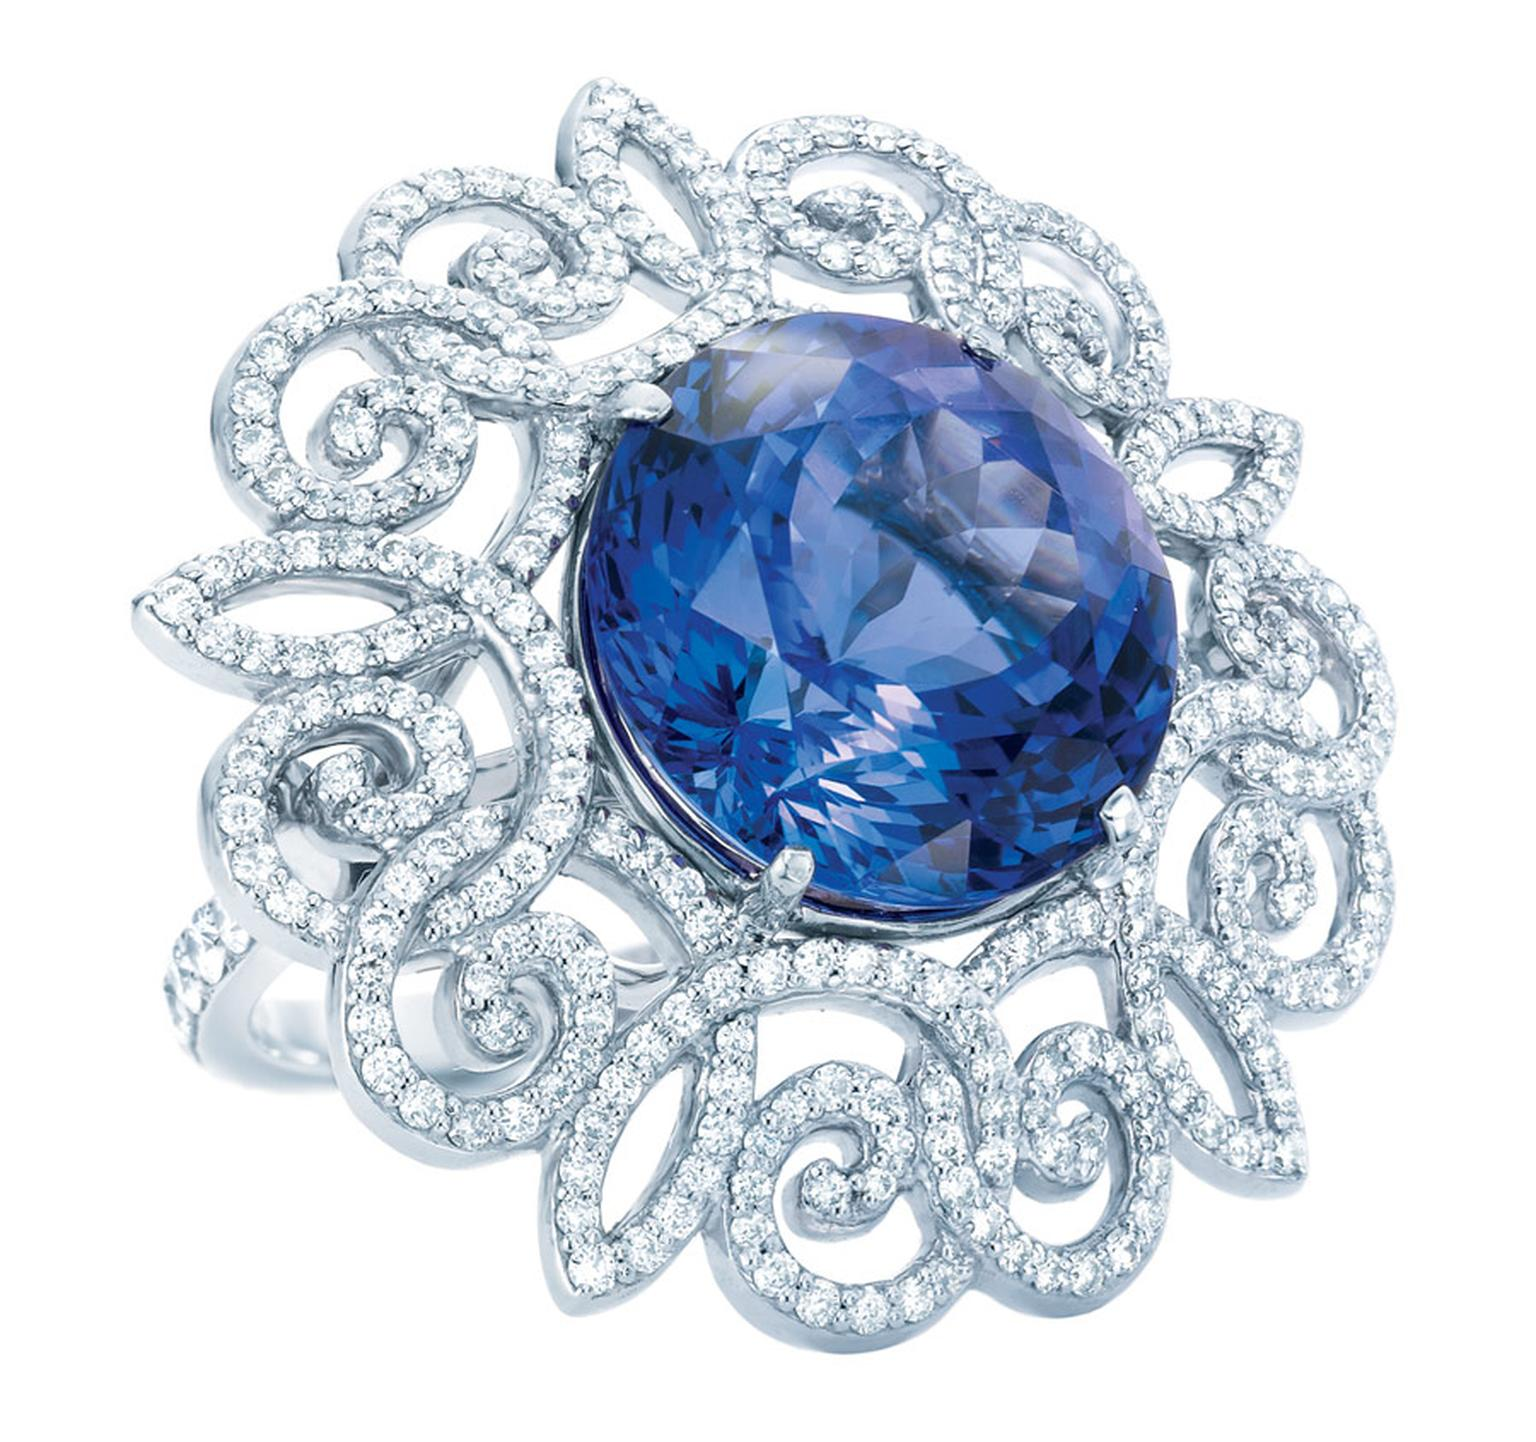 Tiffany Anniversary platinum ring with a 9.99ct tanzanite and diamonds.